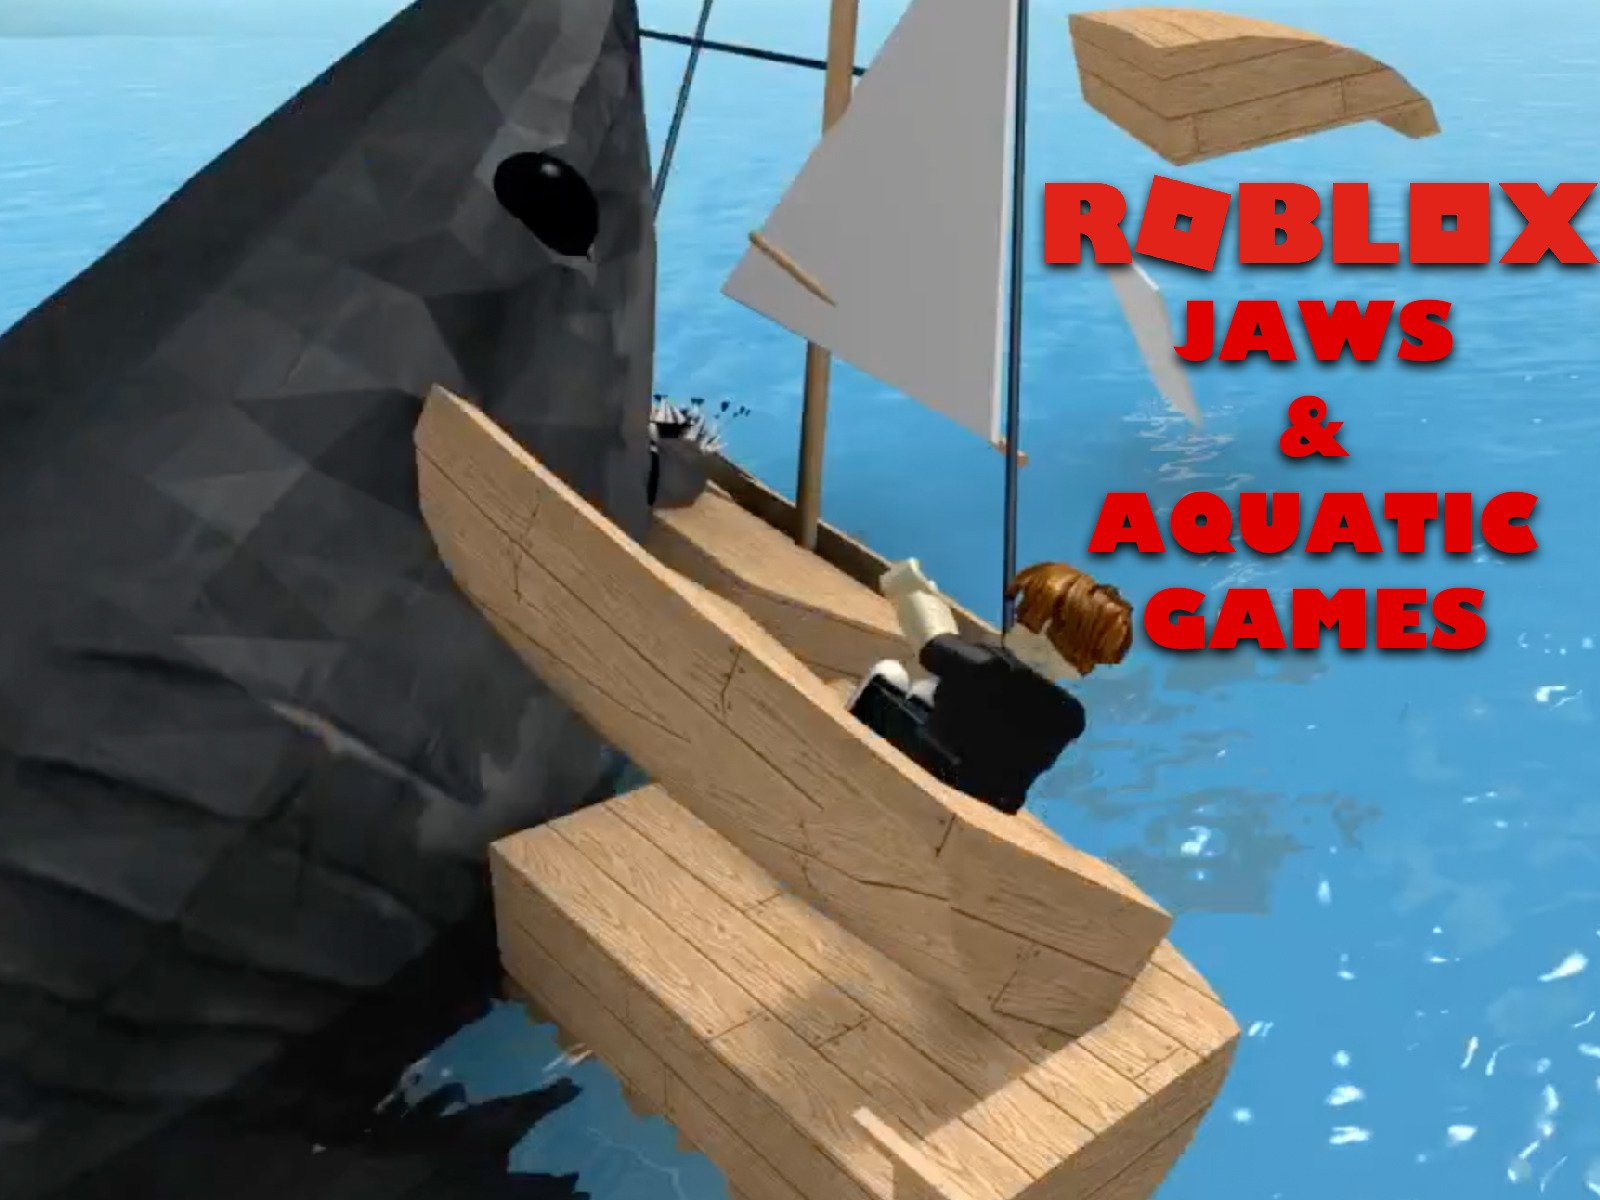 Clip: Roblox Jaws & Aquatic Games